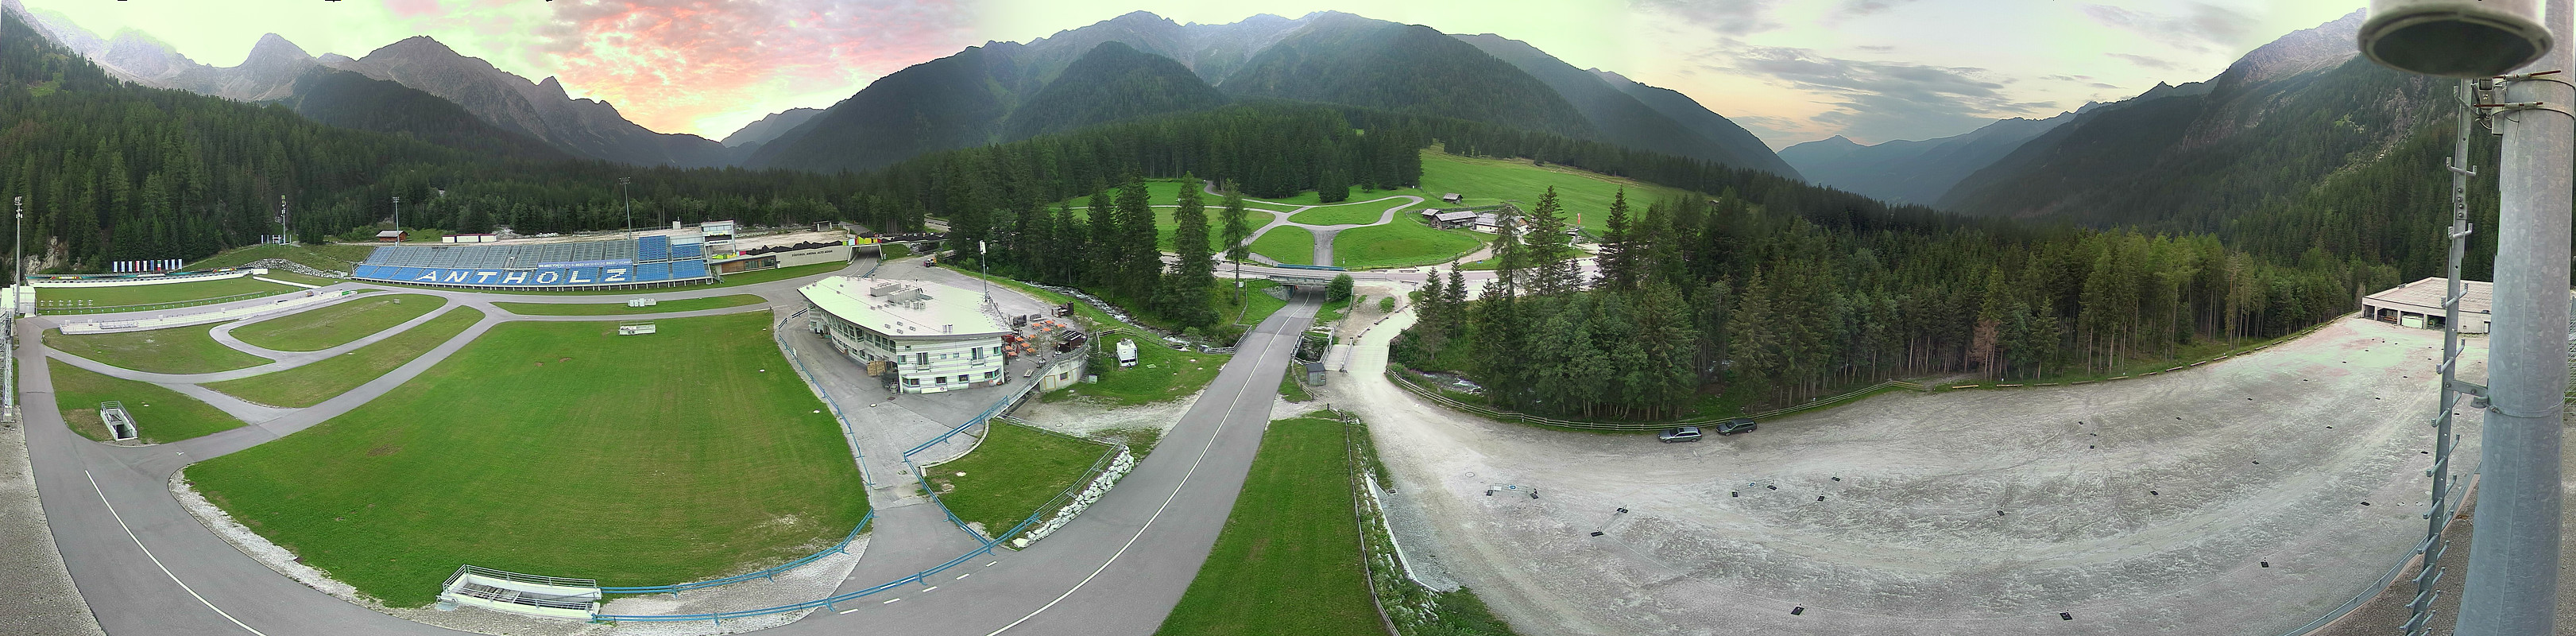 Valle Anterselva Centro Biathlon